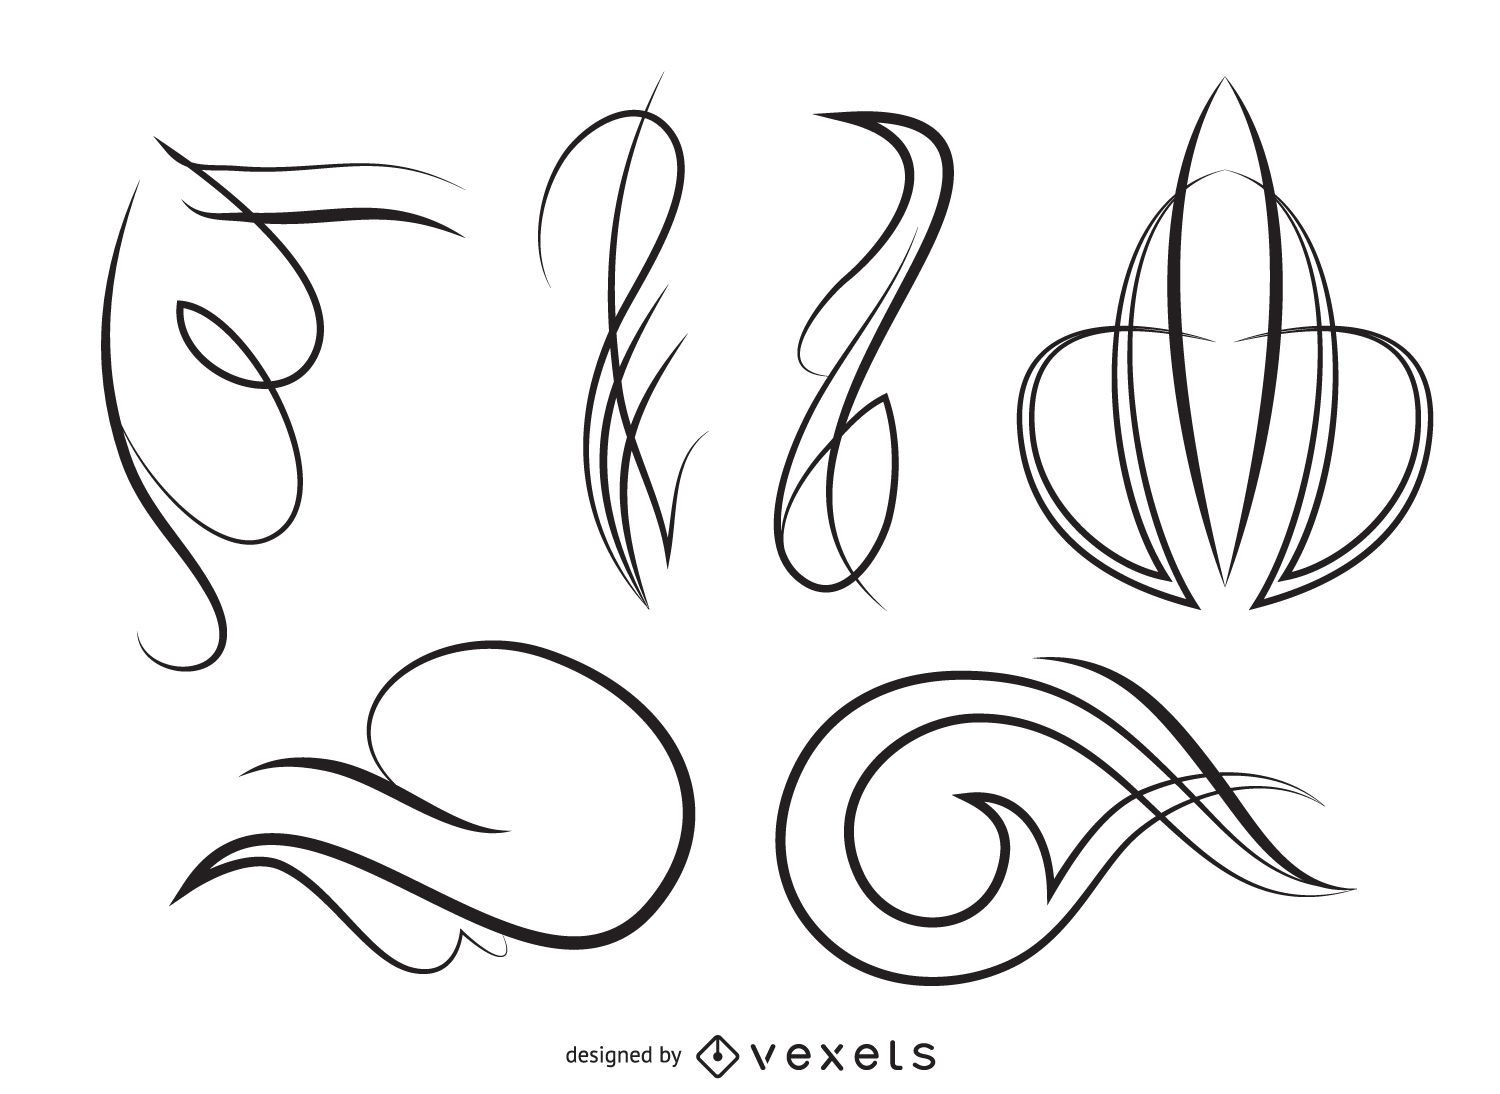 Line Art Vector Illustrator : Ornament line art set vector download